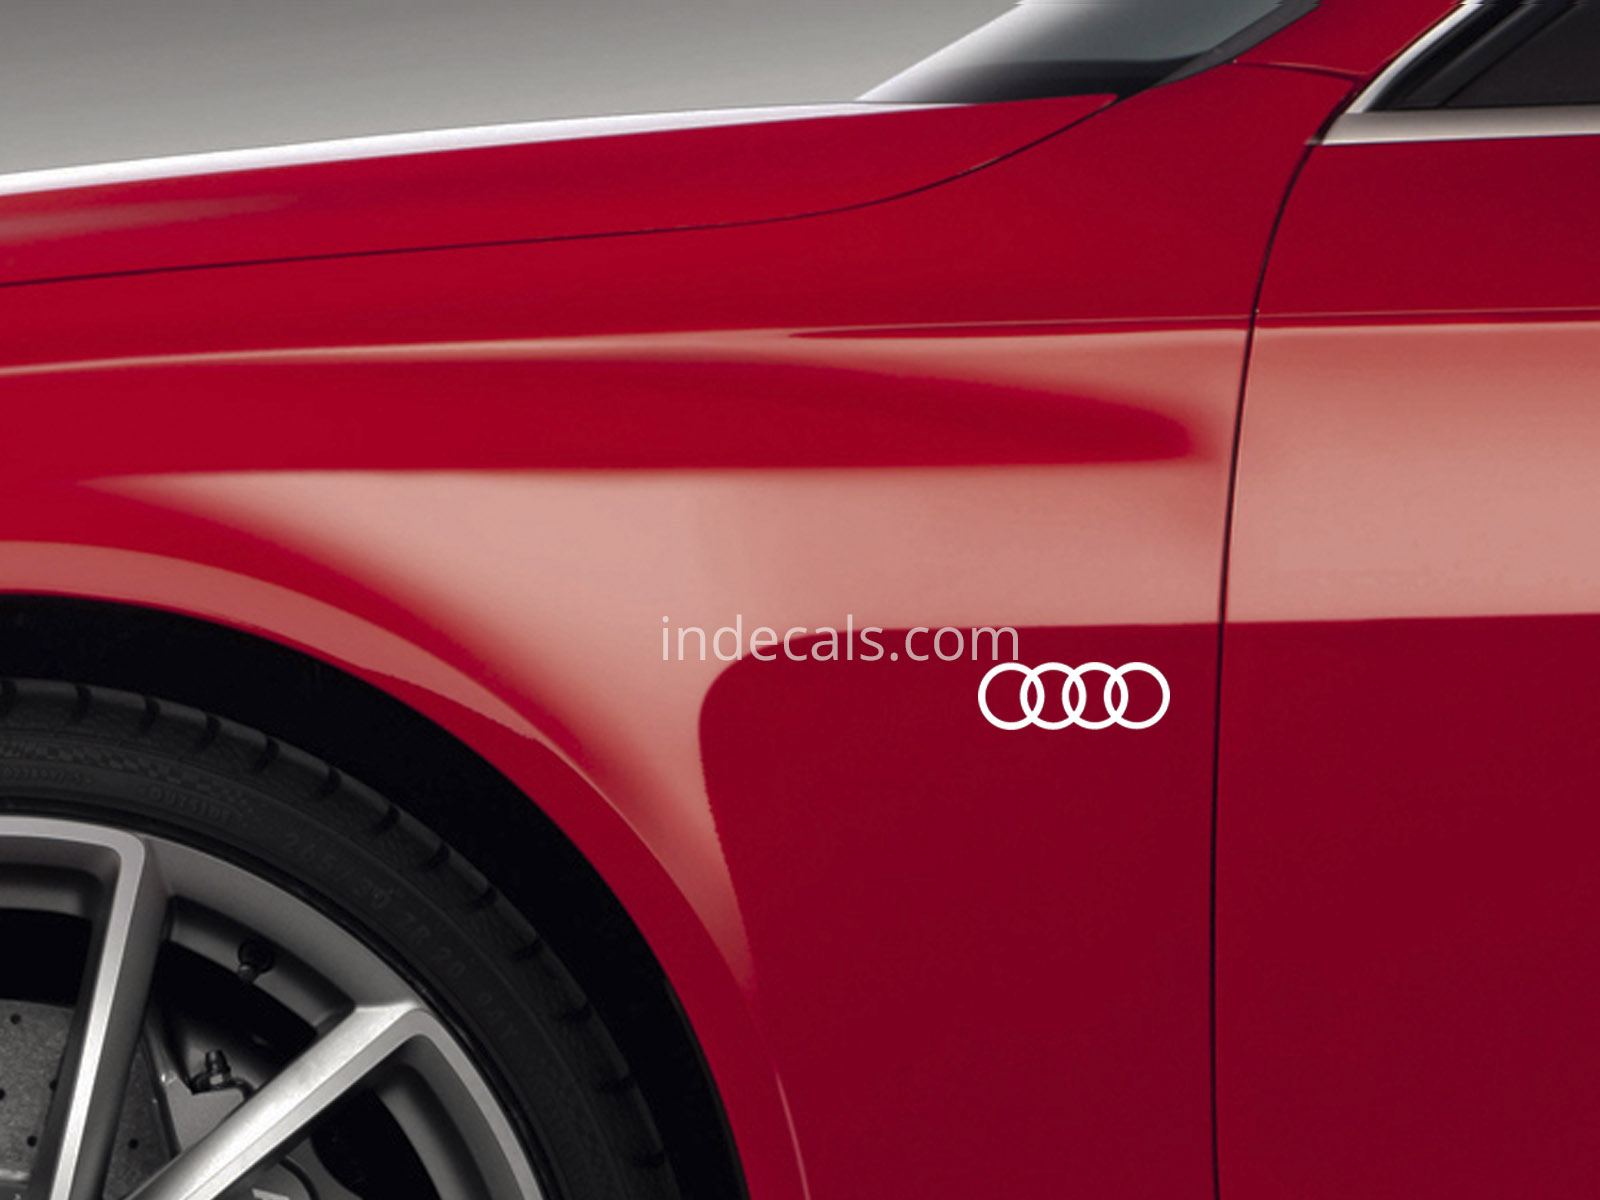 3 x Audi Rings Stickers for Wings - White